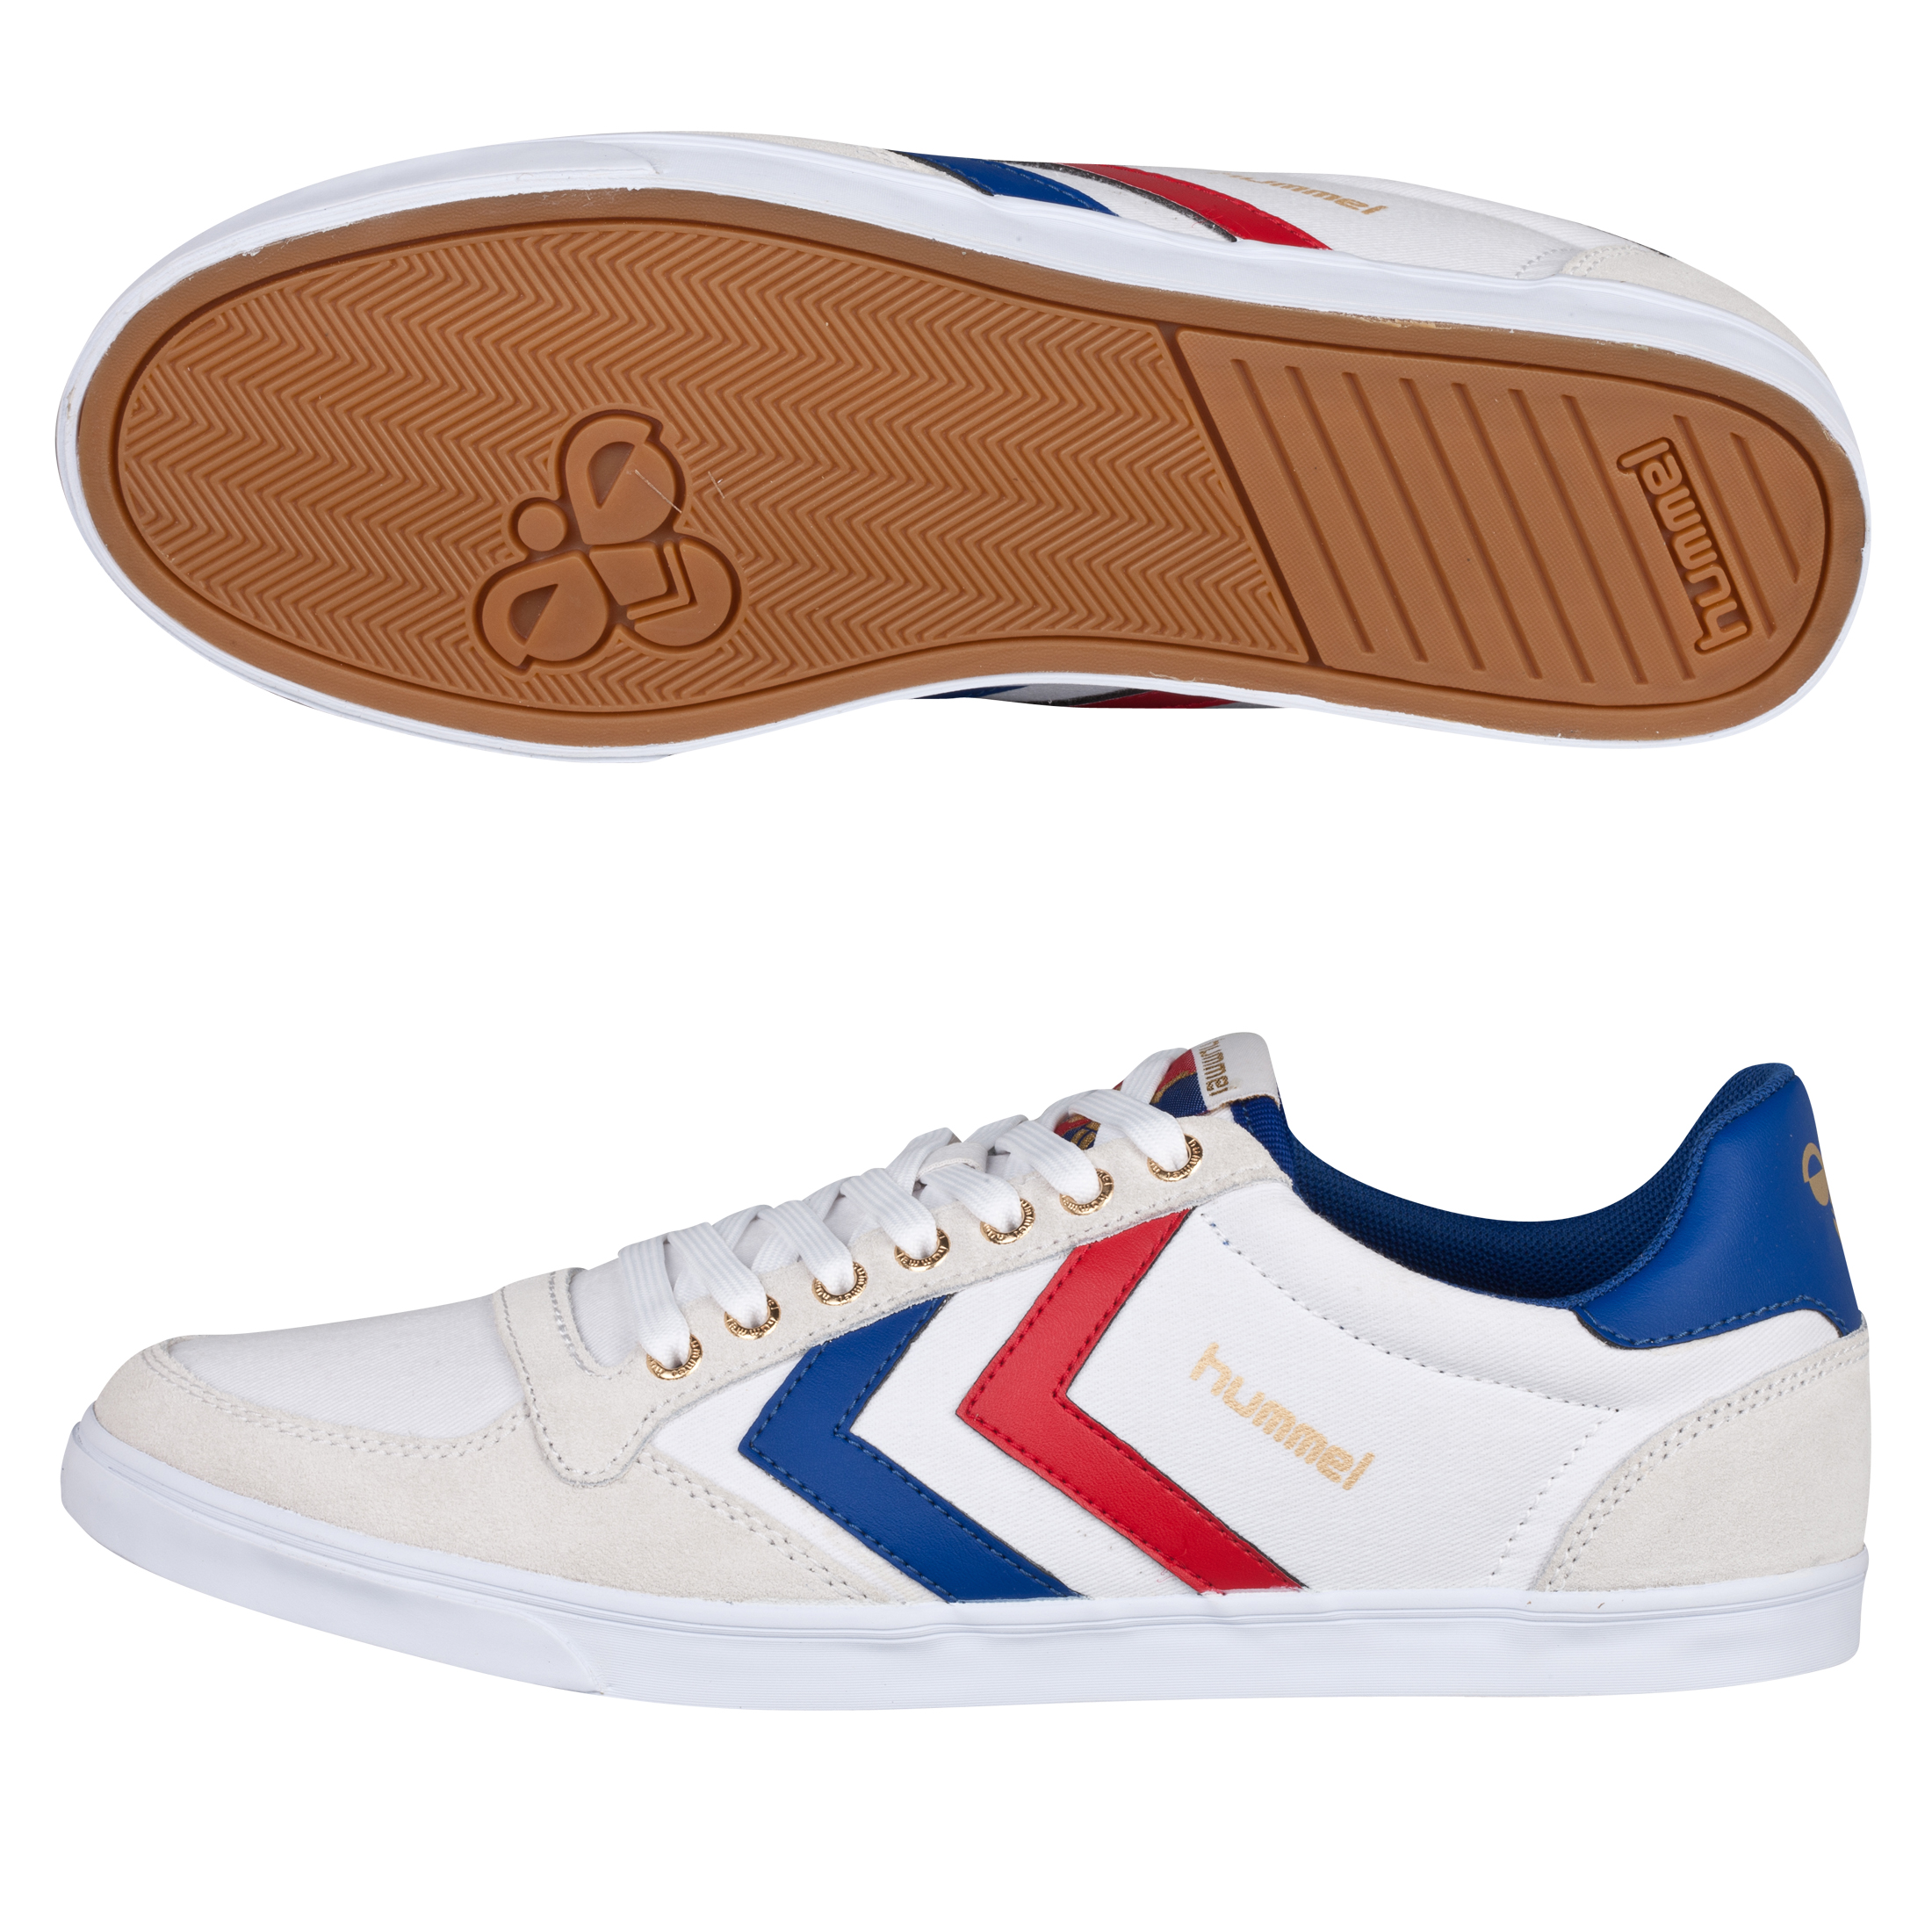 Hummel Slimmer Stadil Low Canvas Trainers - White/Limoges Blue/Ribbon Red